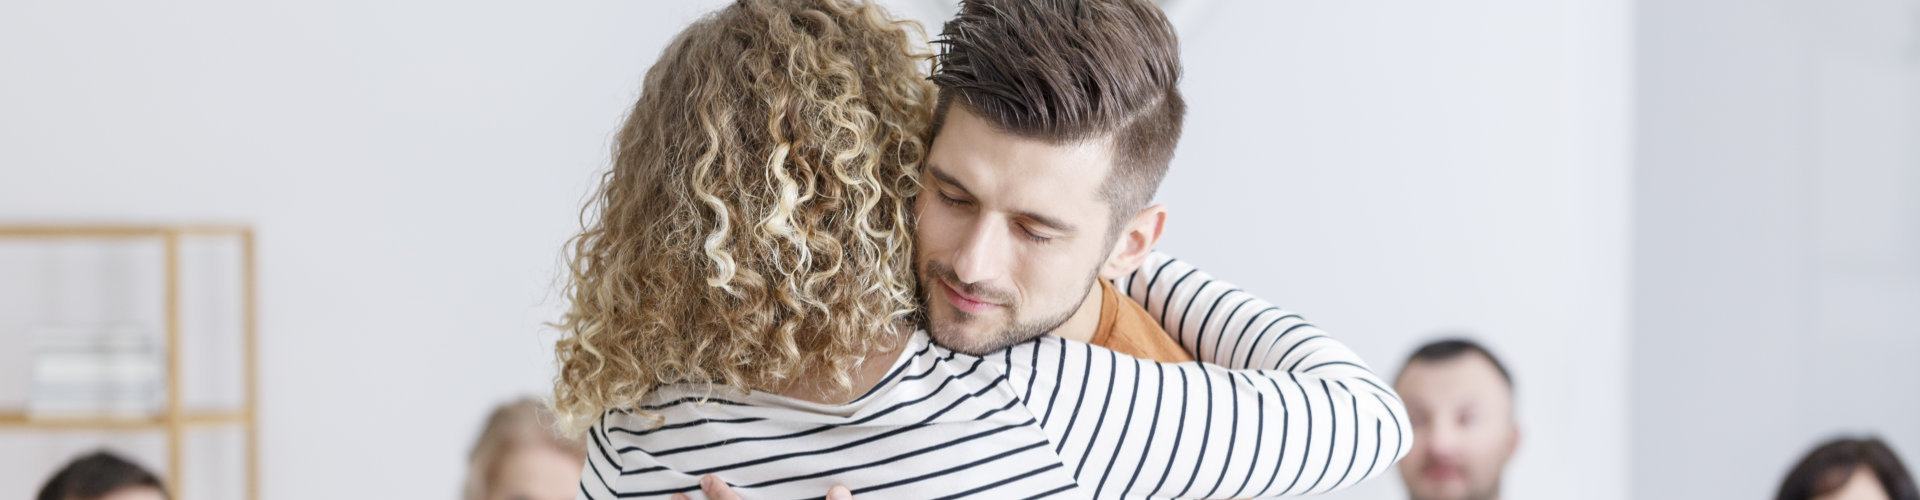 therapist hugging an adult man